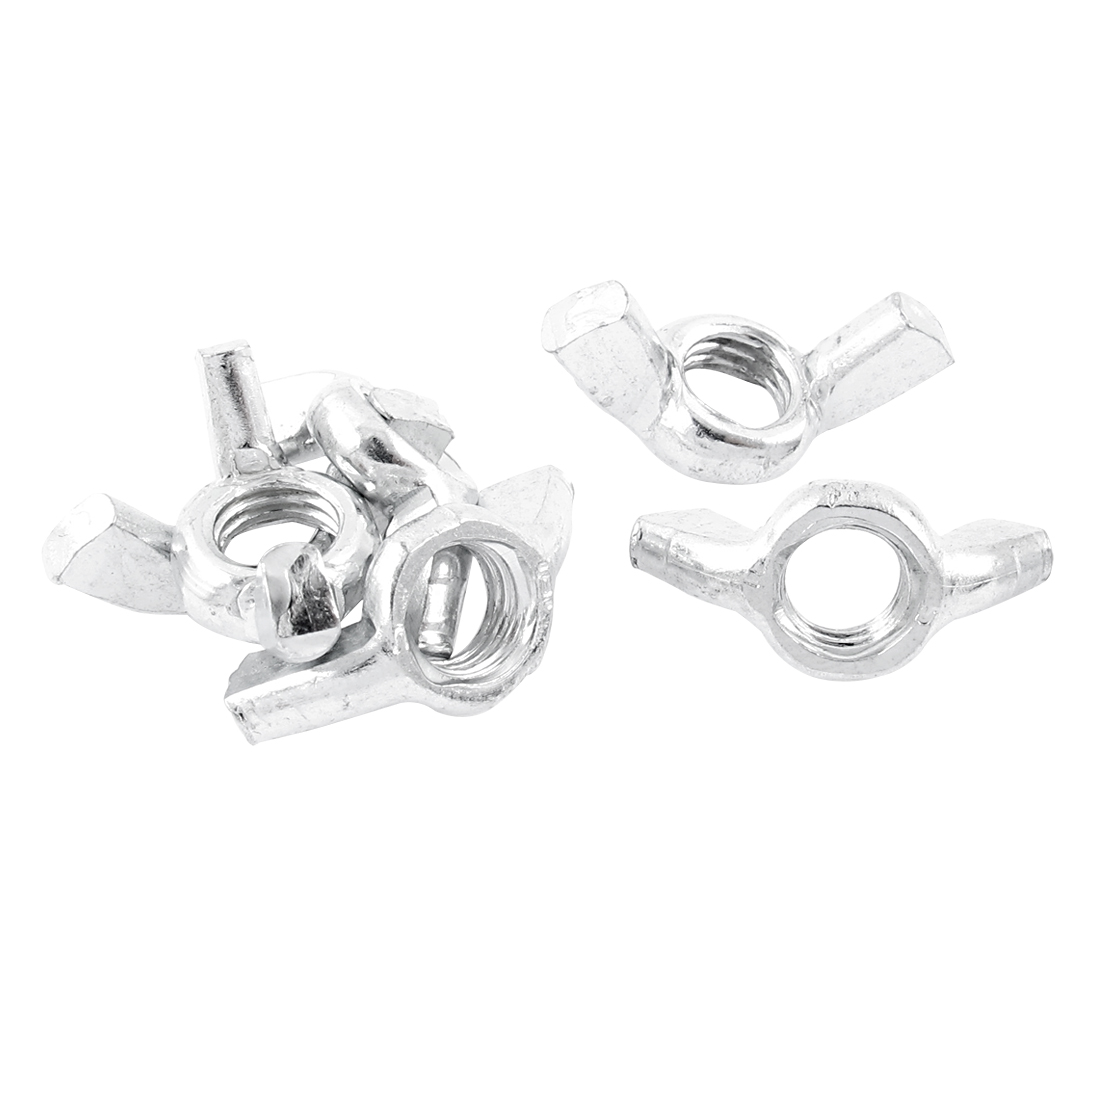 M8 8mm Thread Metal Wingnut Butterfly Wing Nuts 6pcs